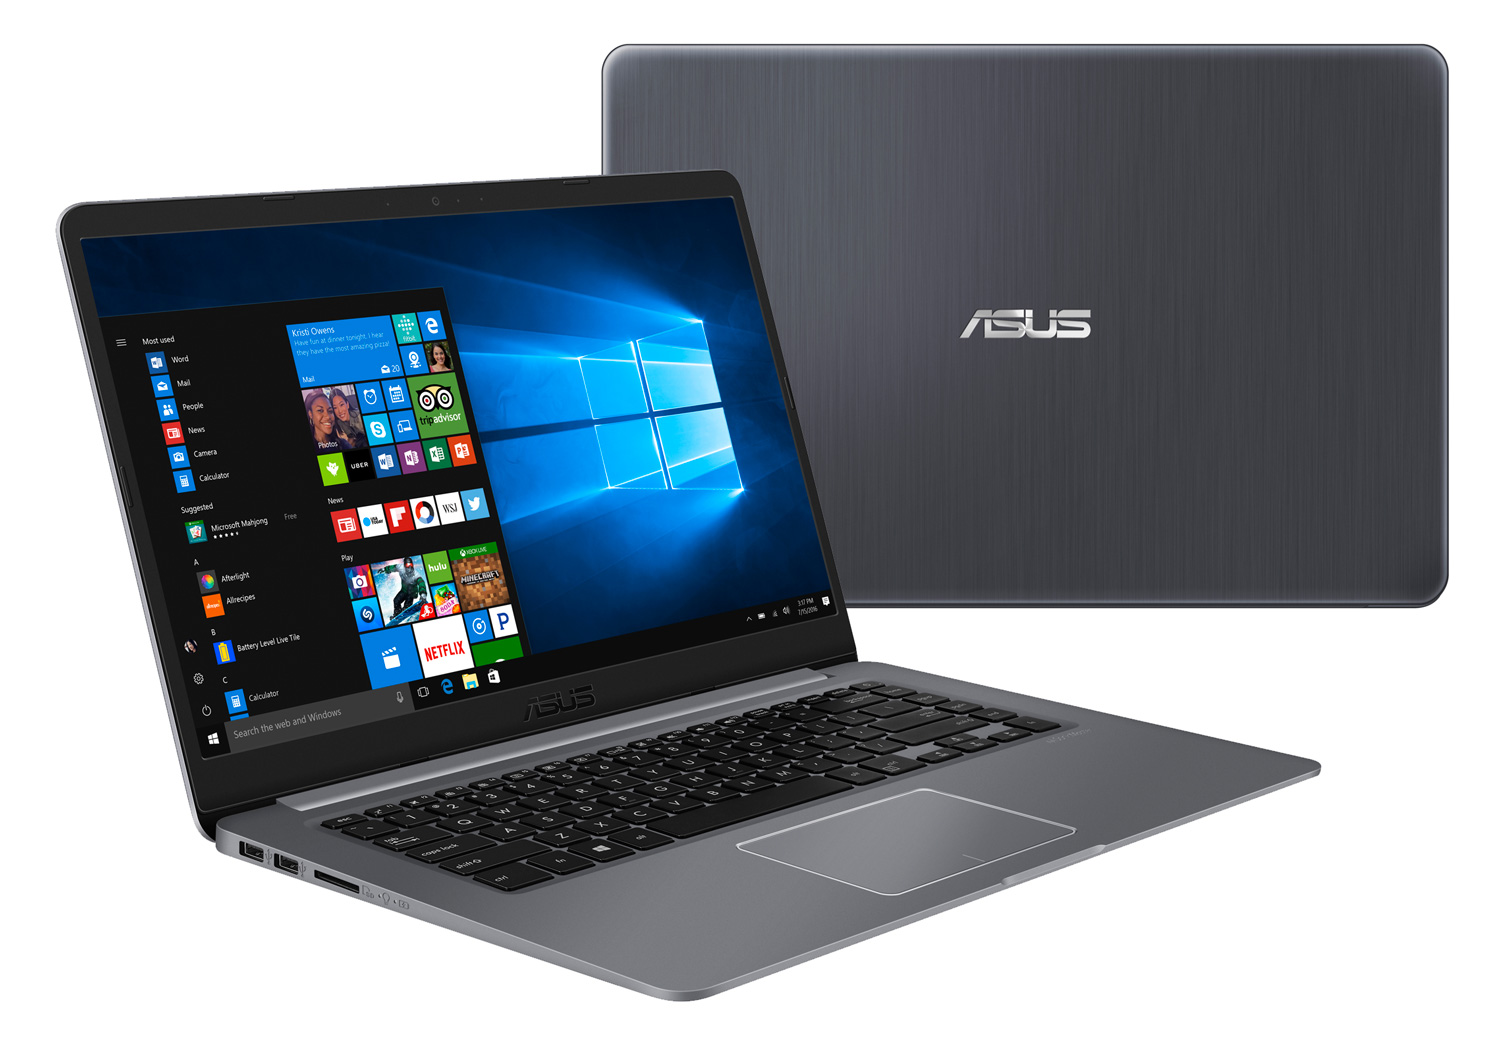 asus vivobook s501ua br083t achetez au meilleur prix. Black Bedroom Furniture Sets. Home Design Ideas